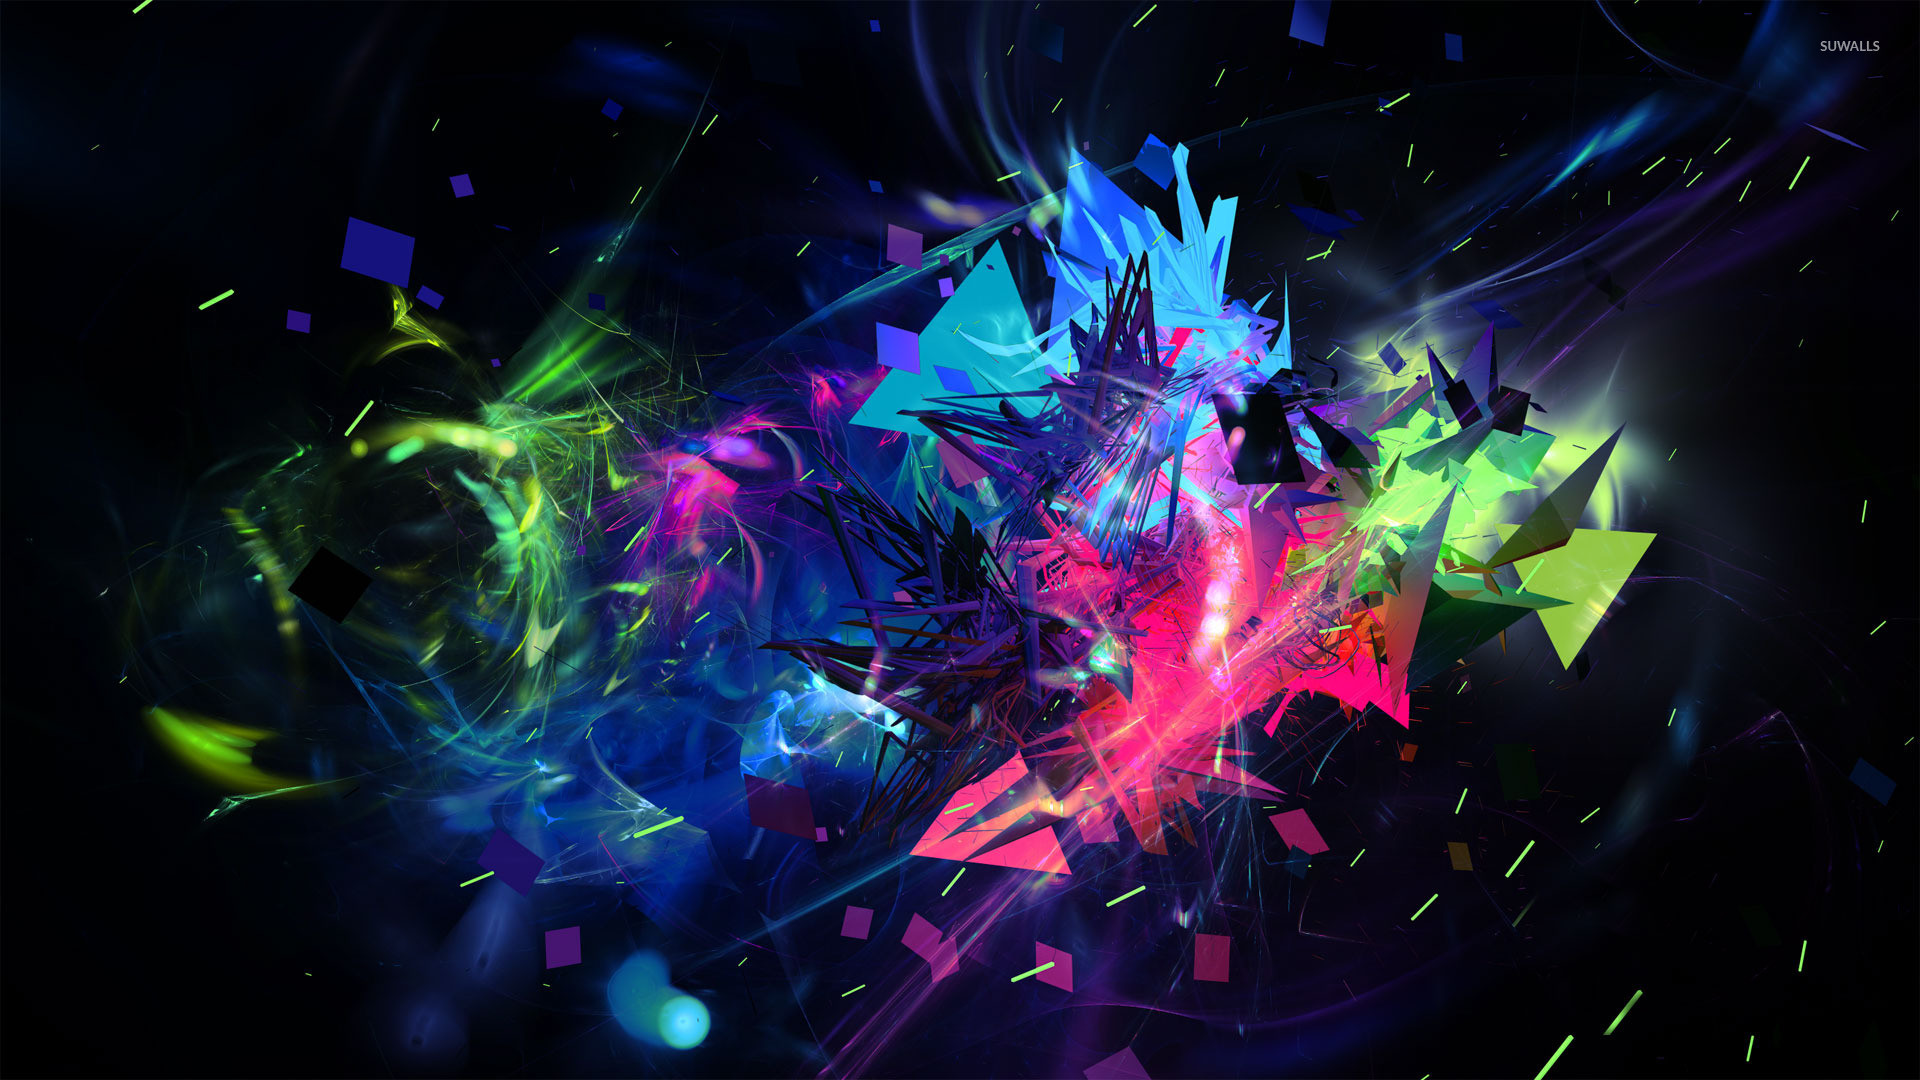 Abstract Shapes Wallpaper (63+ Images